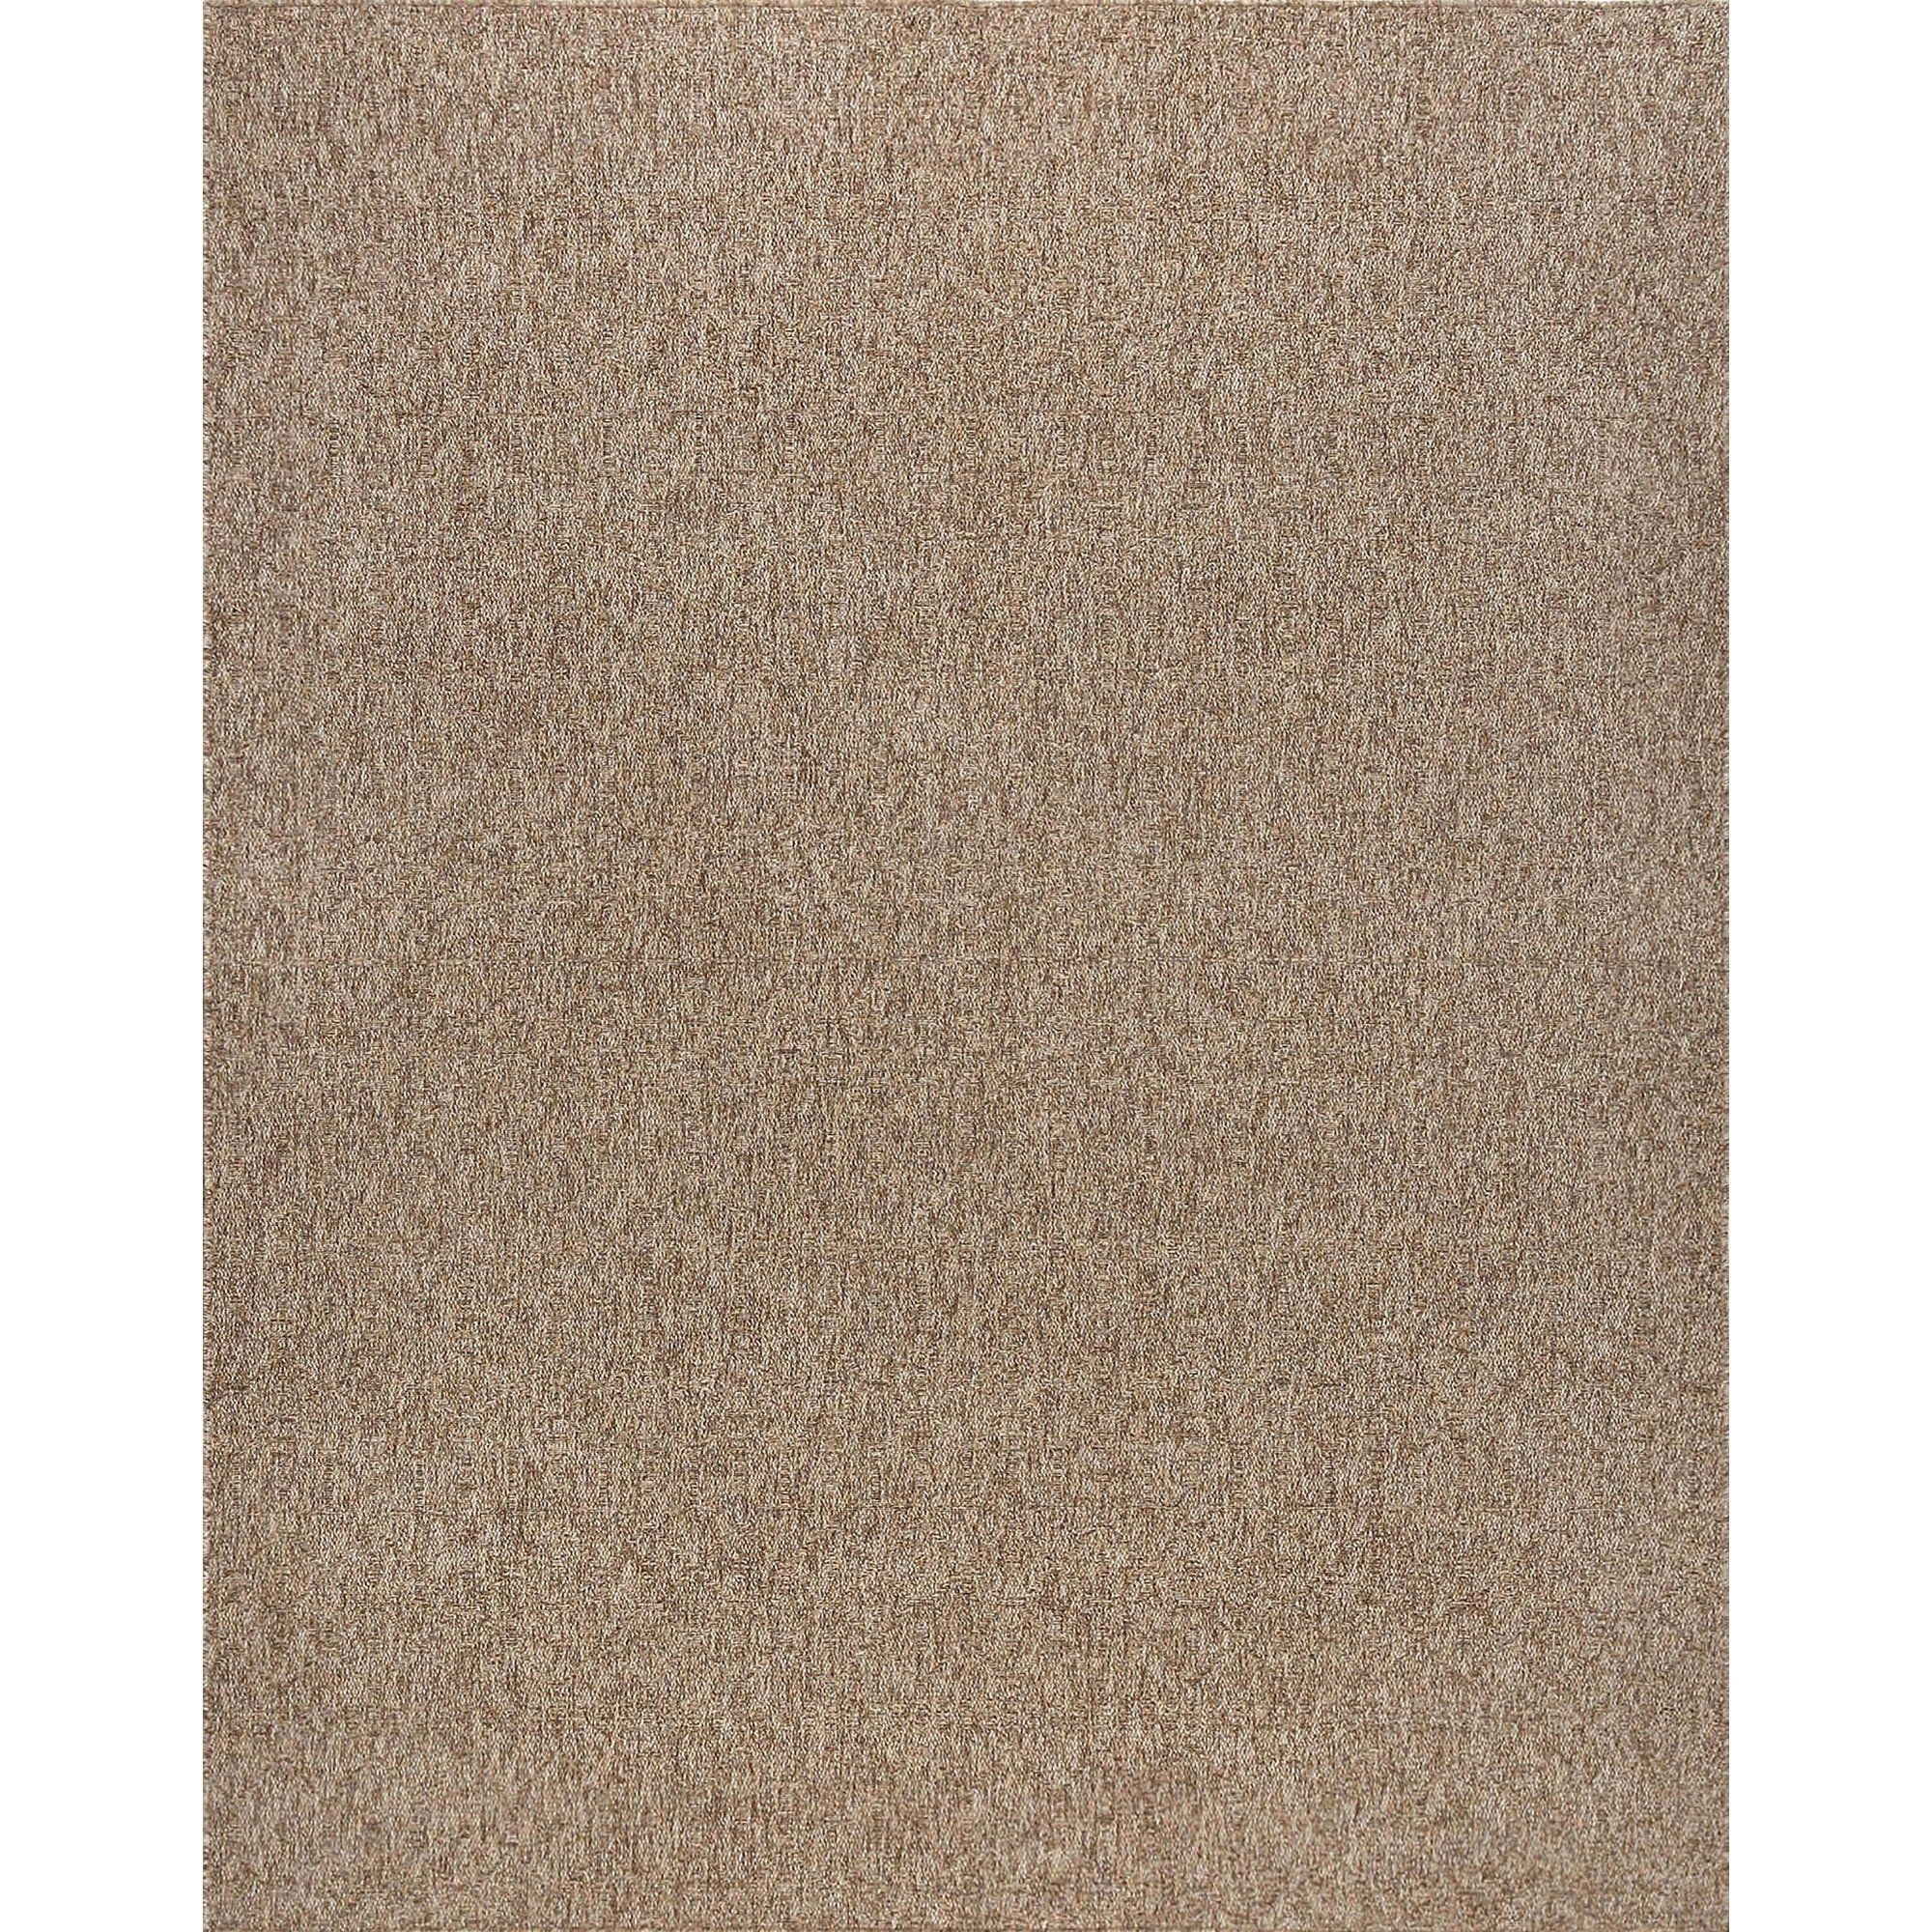 Alise Rugs Seros Modern Solid Area Rug 7 9 X 10 Brown 7 9 X